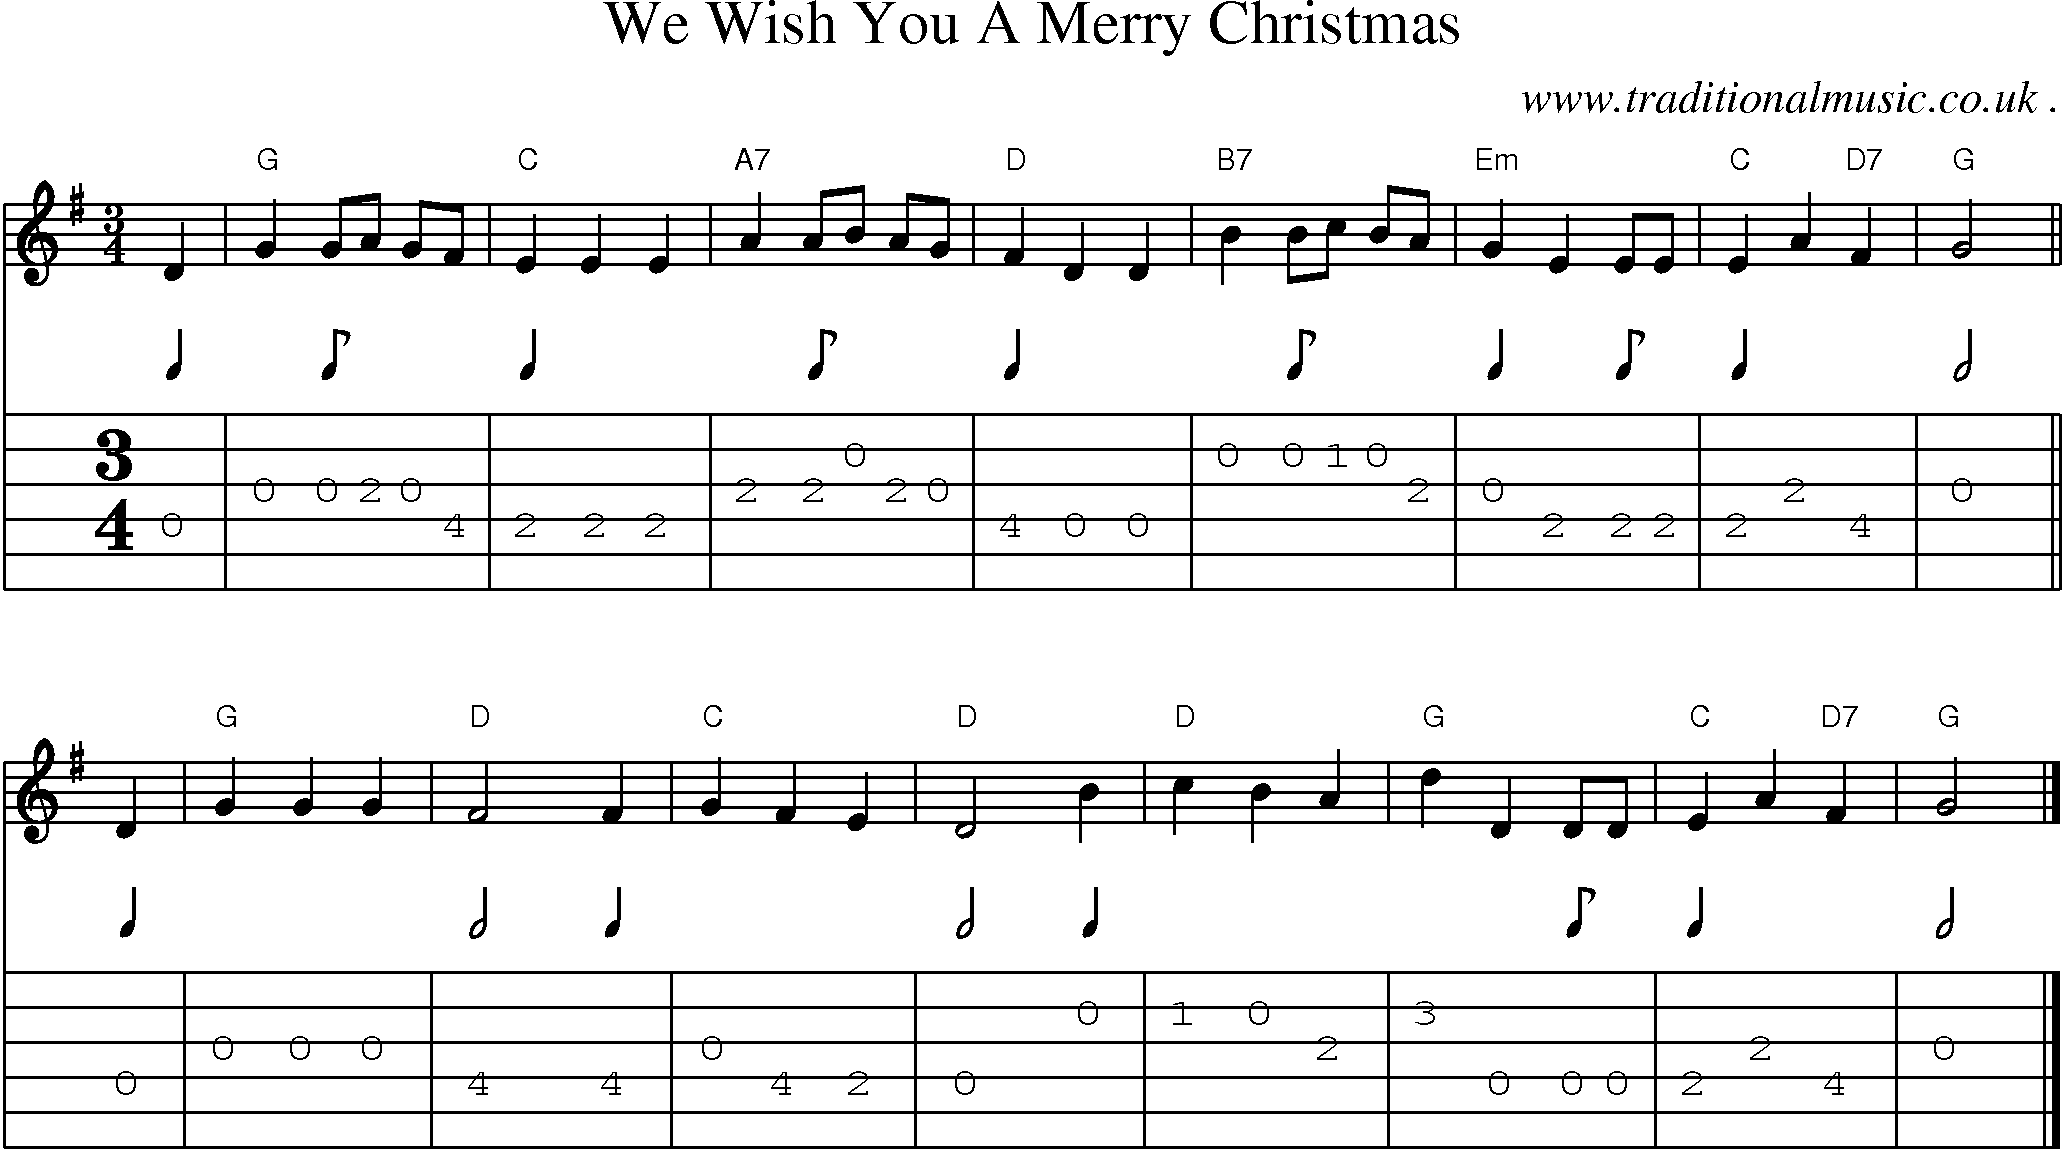 Scottish Tune, Sheetmusic, Midi, Mp3, Guitar chords u0026 tabs: We Wish You A Merry Christmas